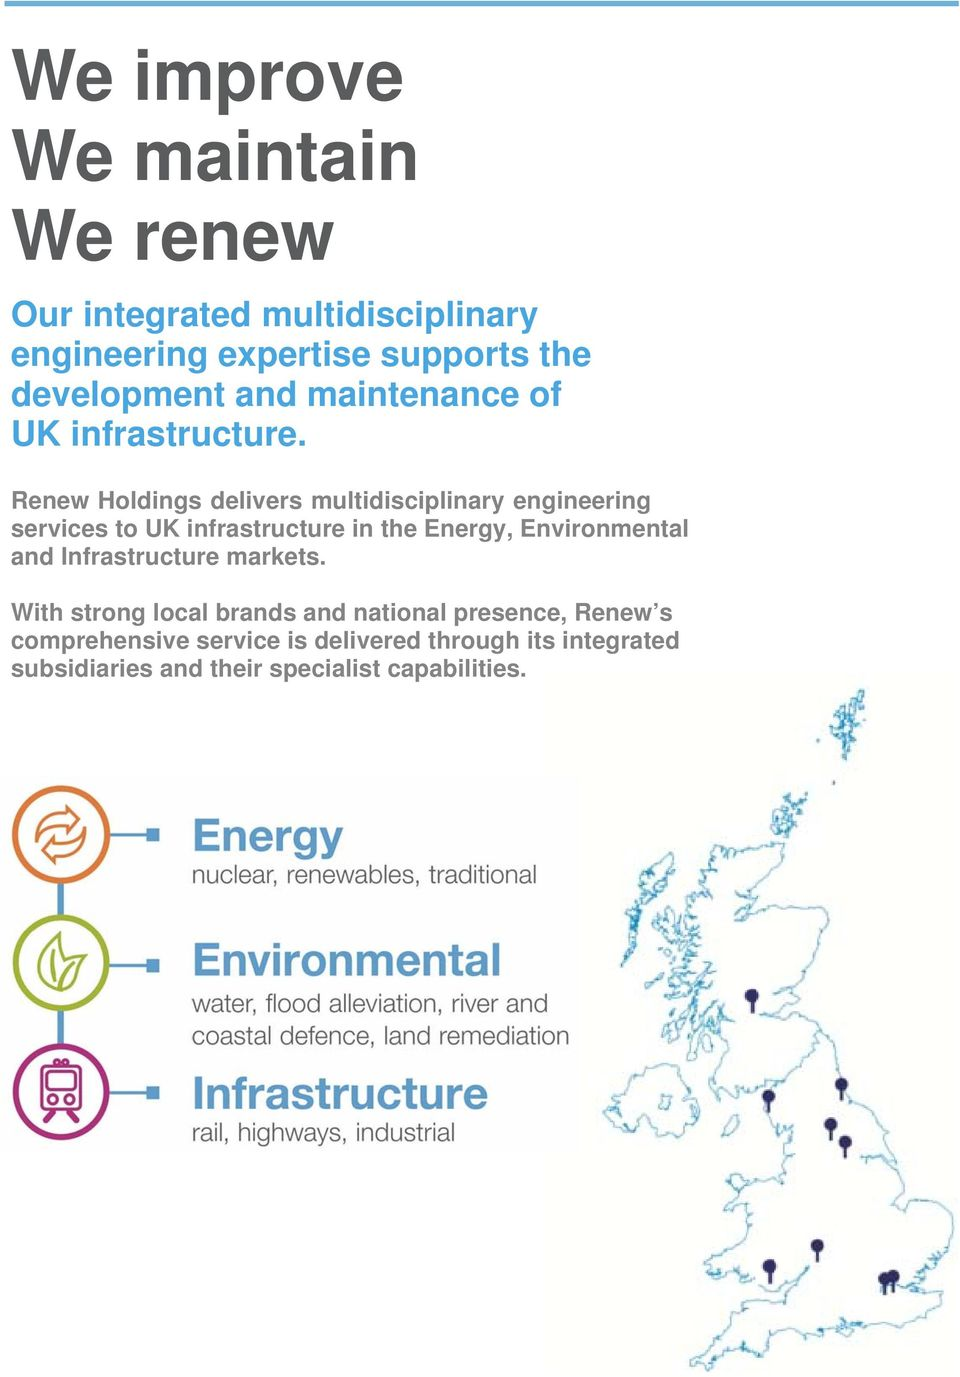 Renew Holdings delivers multidisciplinary engineering services to UK infrastructure in the Energy, Environmental